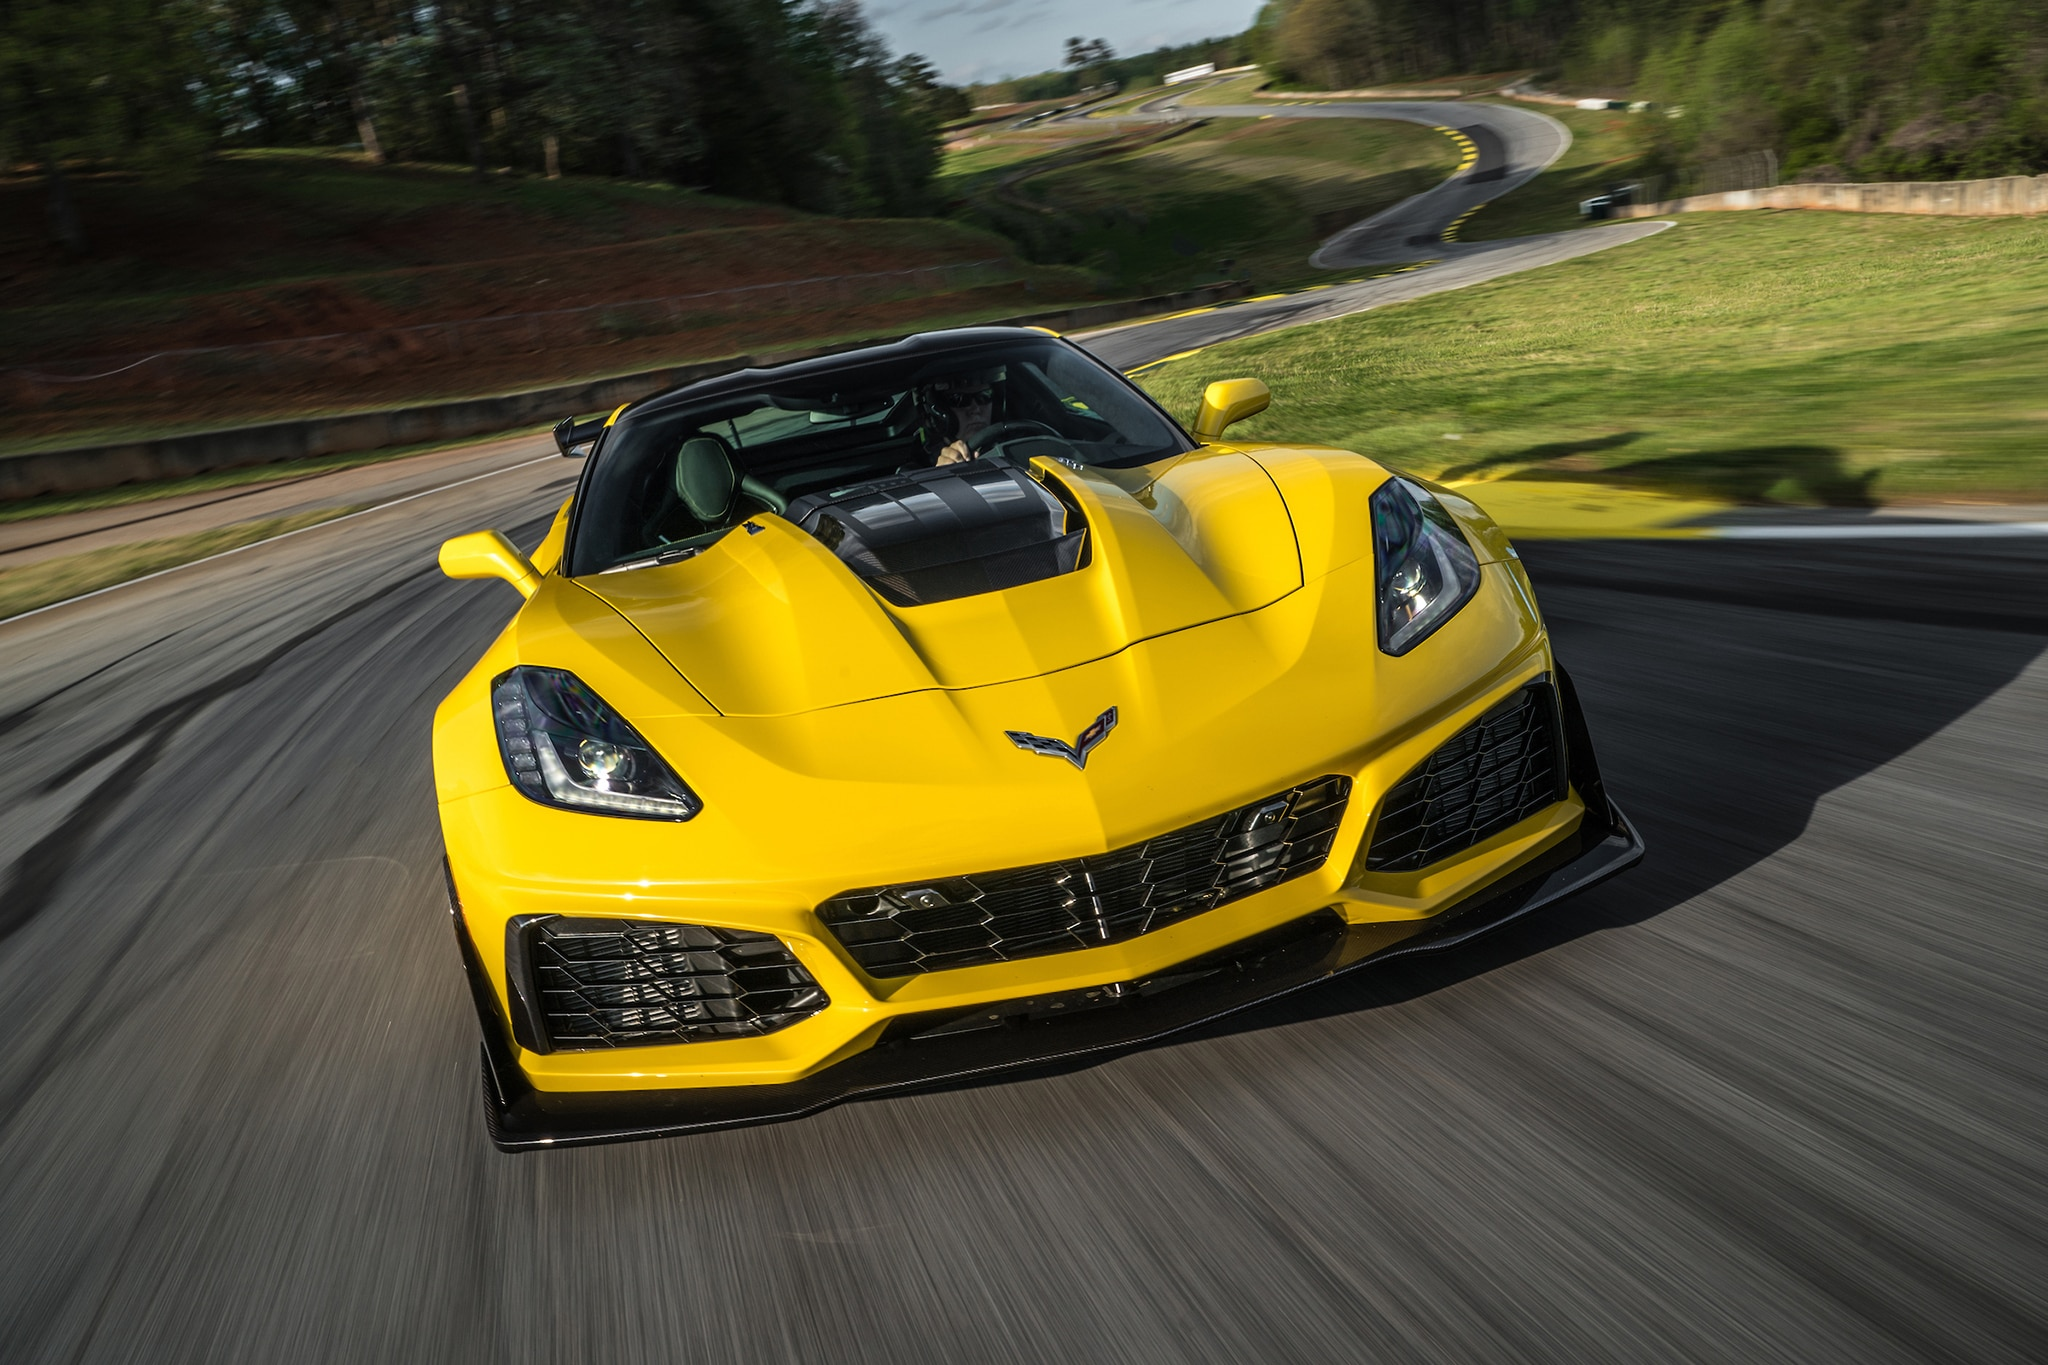 2018 Chevrolet Corvette >> 2019 Chevrolet Corvette ZR1 First Drive | Automobile Magazine